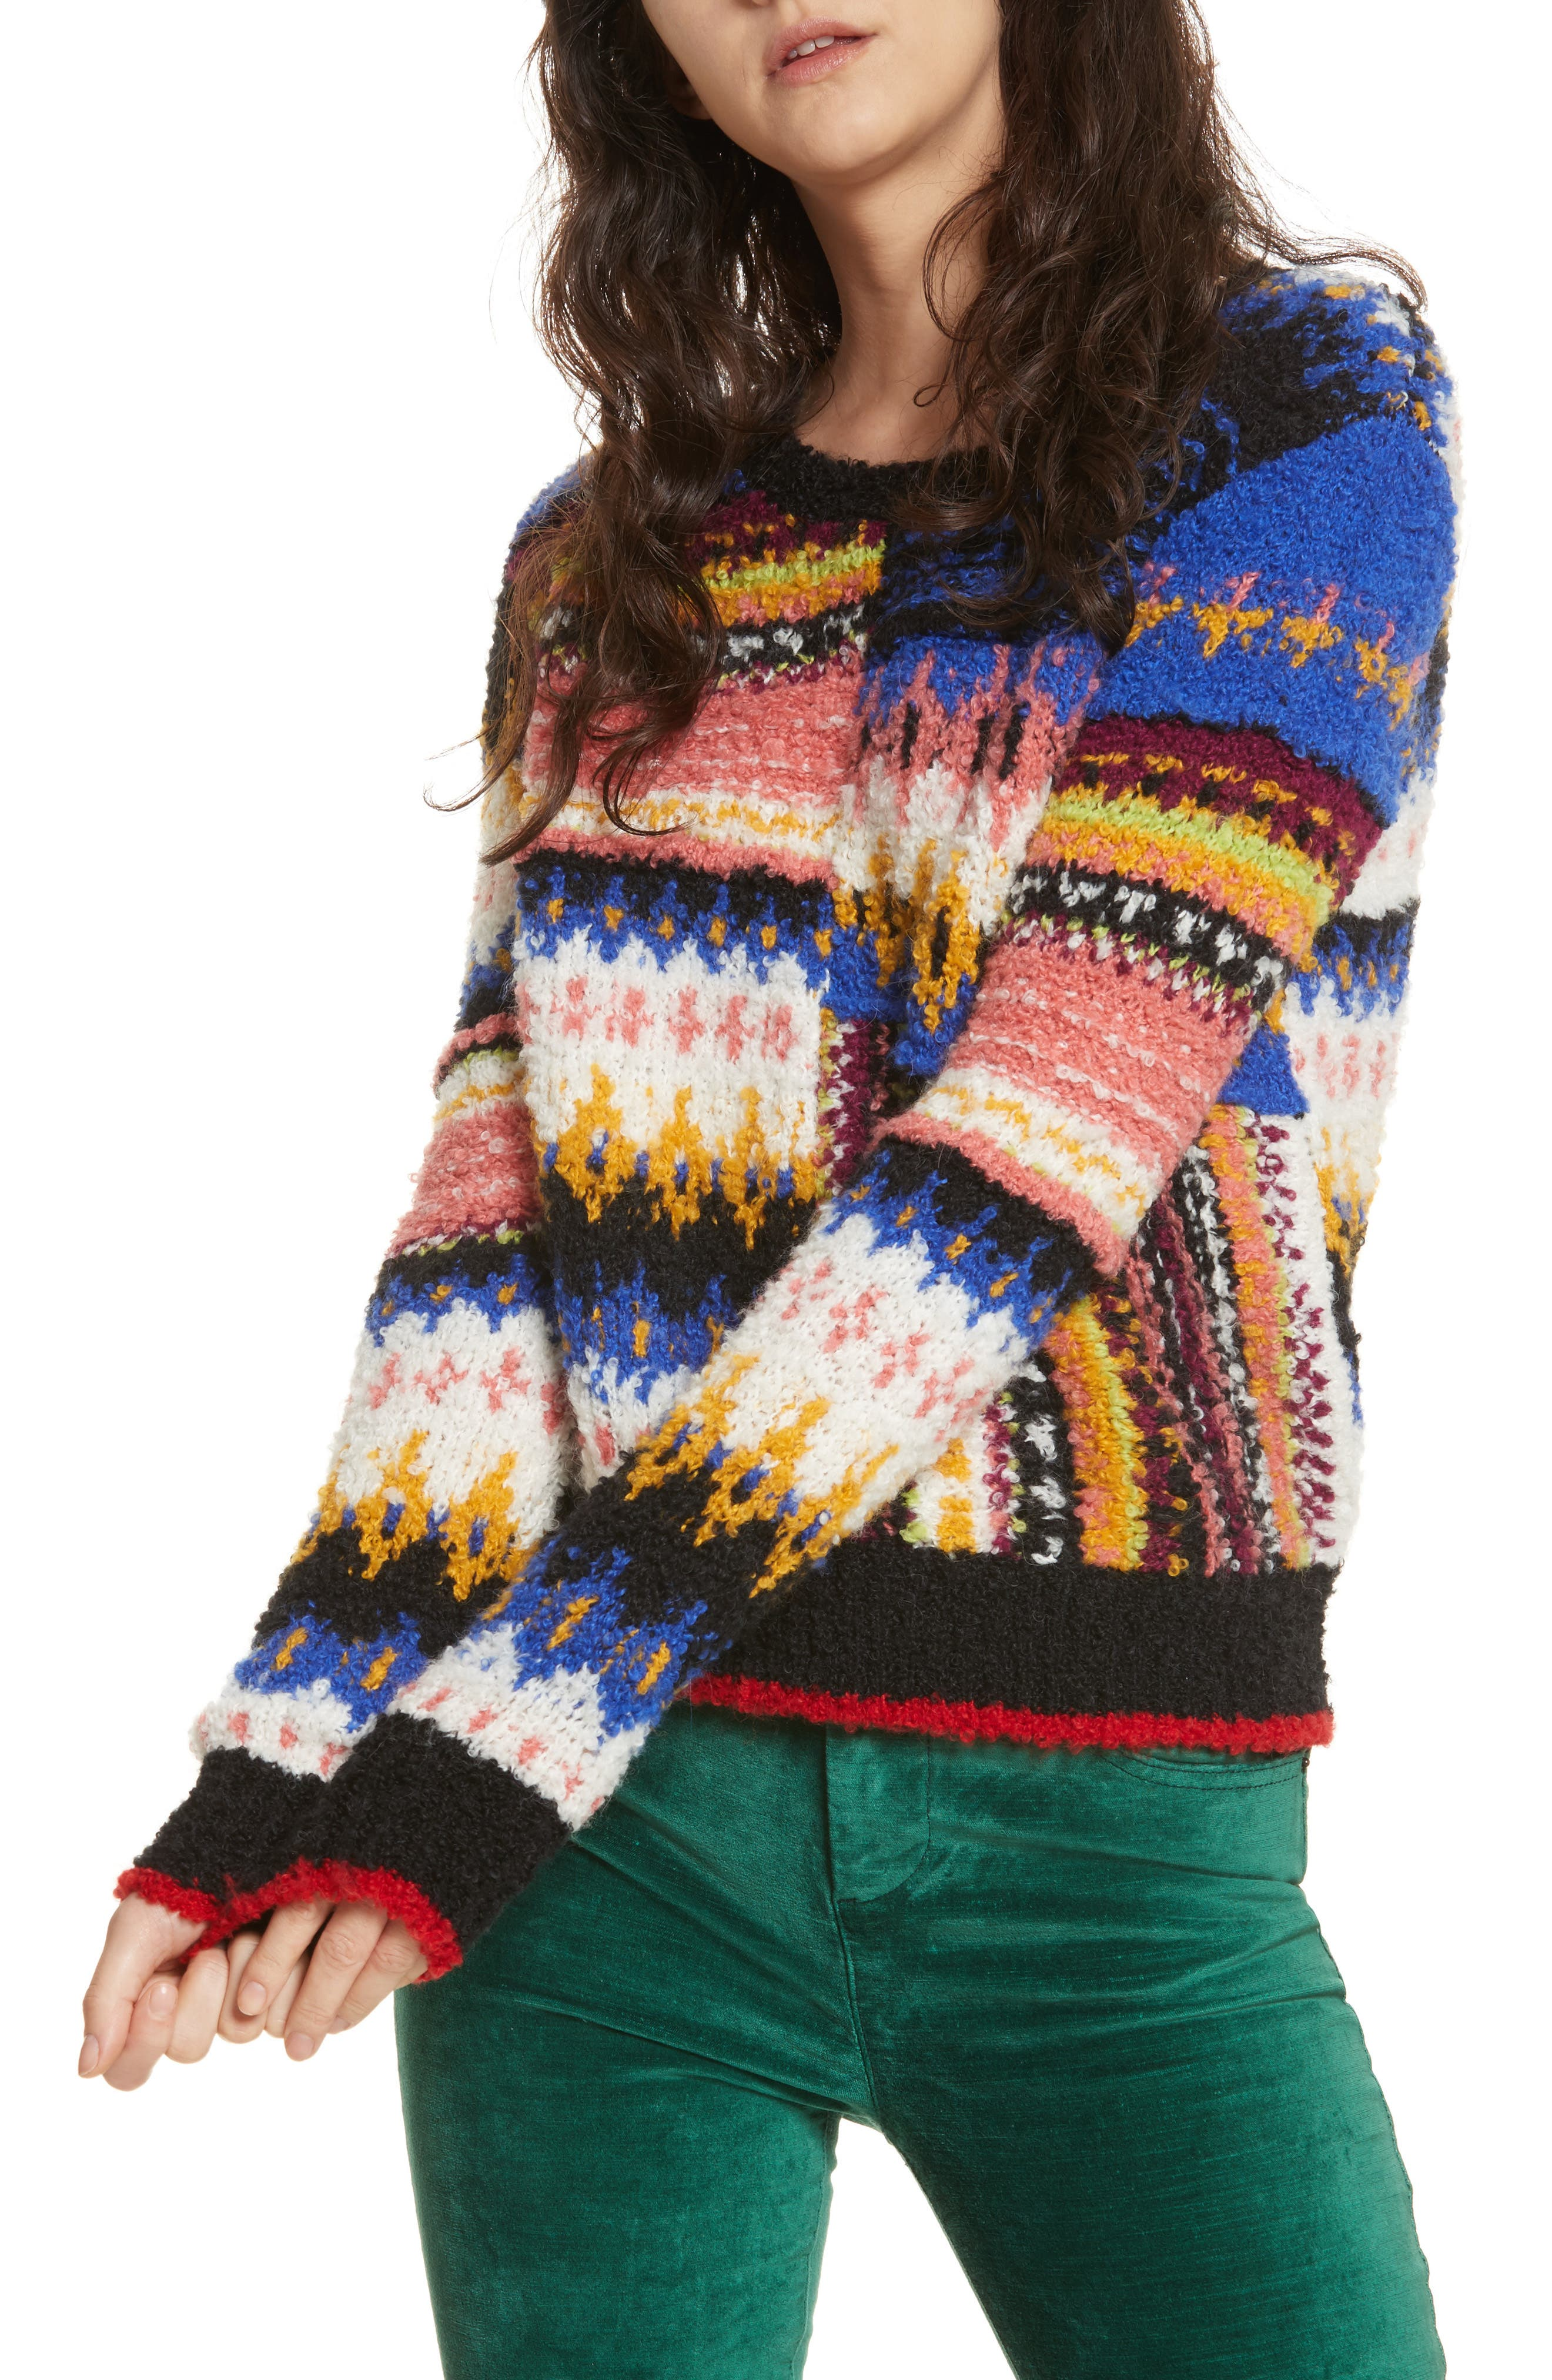 Best Day Ever Sweater,                             Main thumbnail 1, color,                             Multi